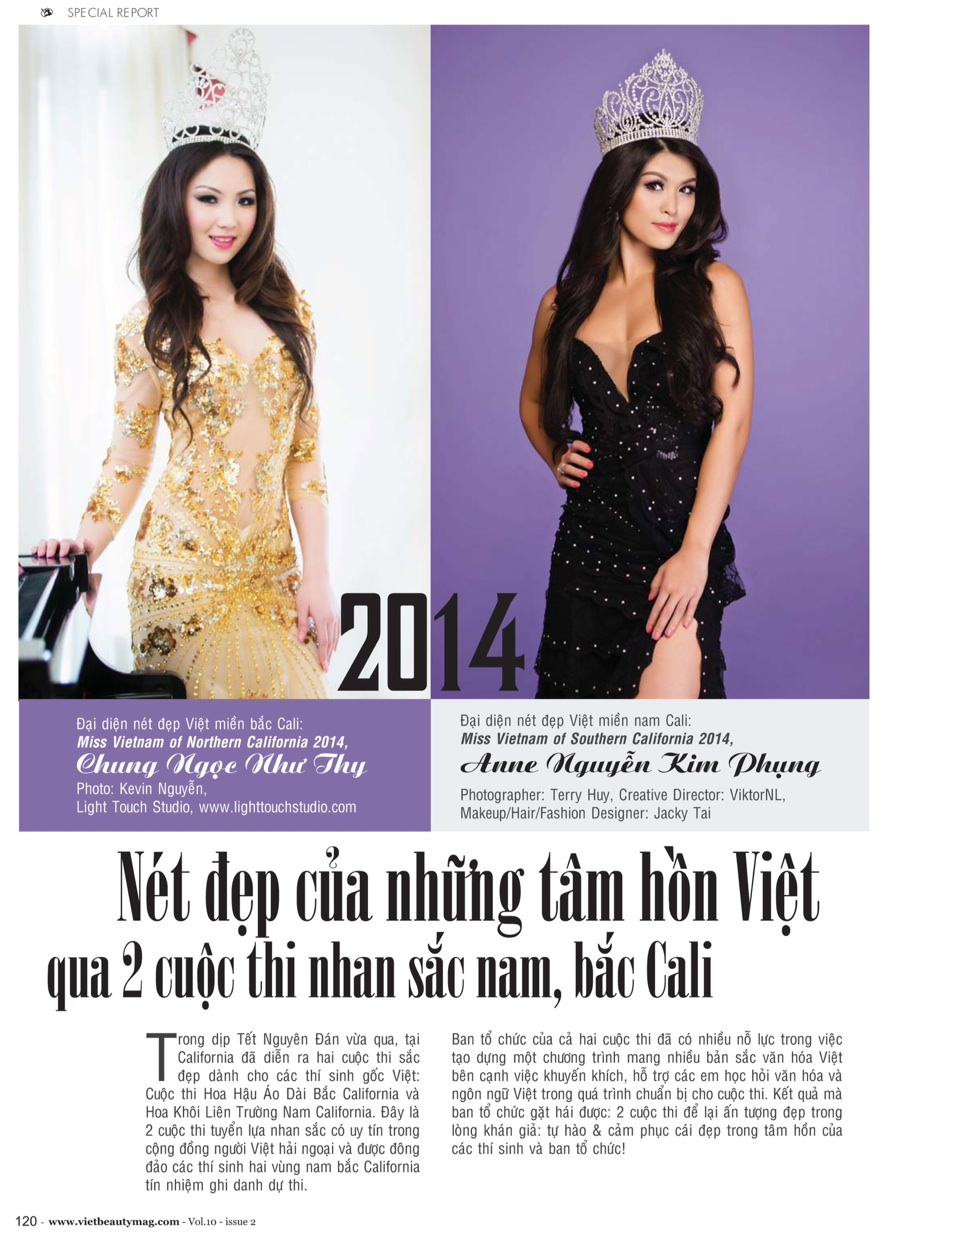 Viet Beauty Magazine - Volume 10 Issue 2 - Image 01